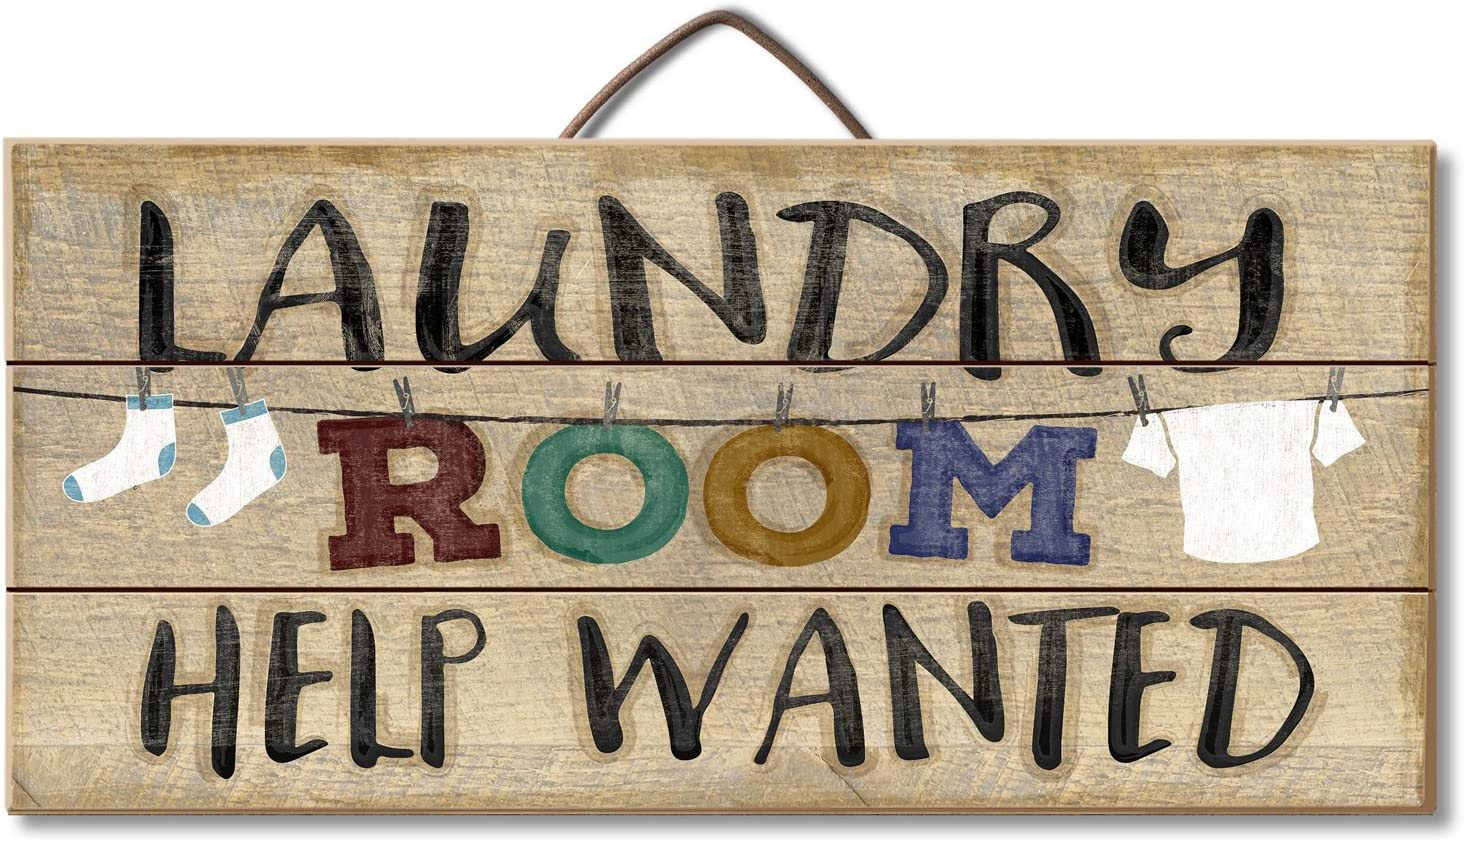 Highland Home Laundry Room Help Wanted Slatted Pallet Wood Sign Made in The USA